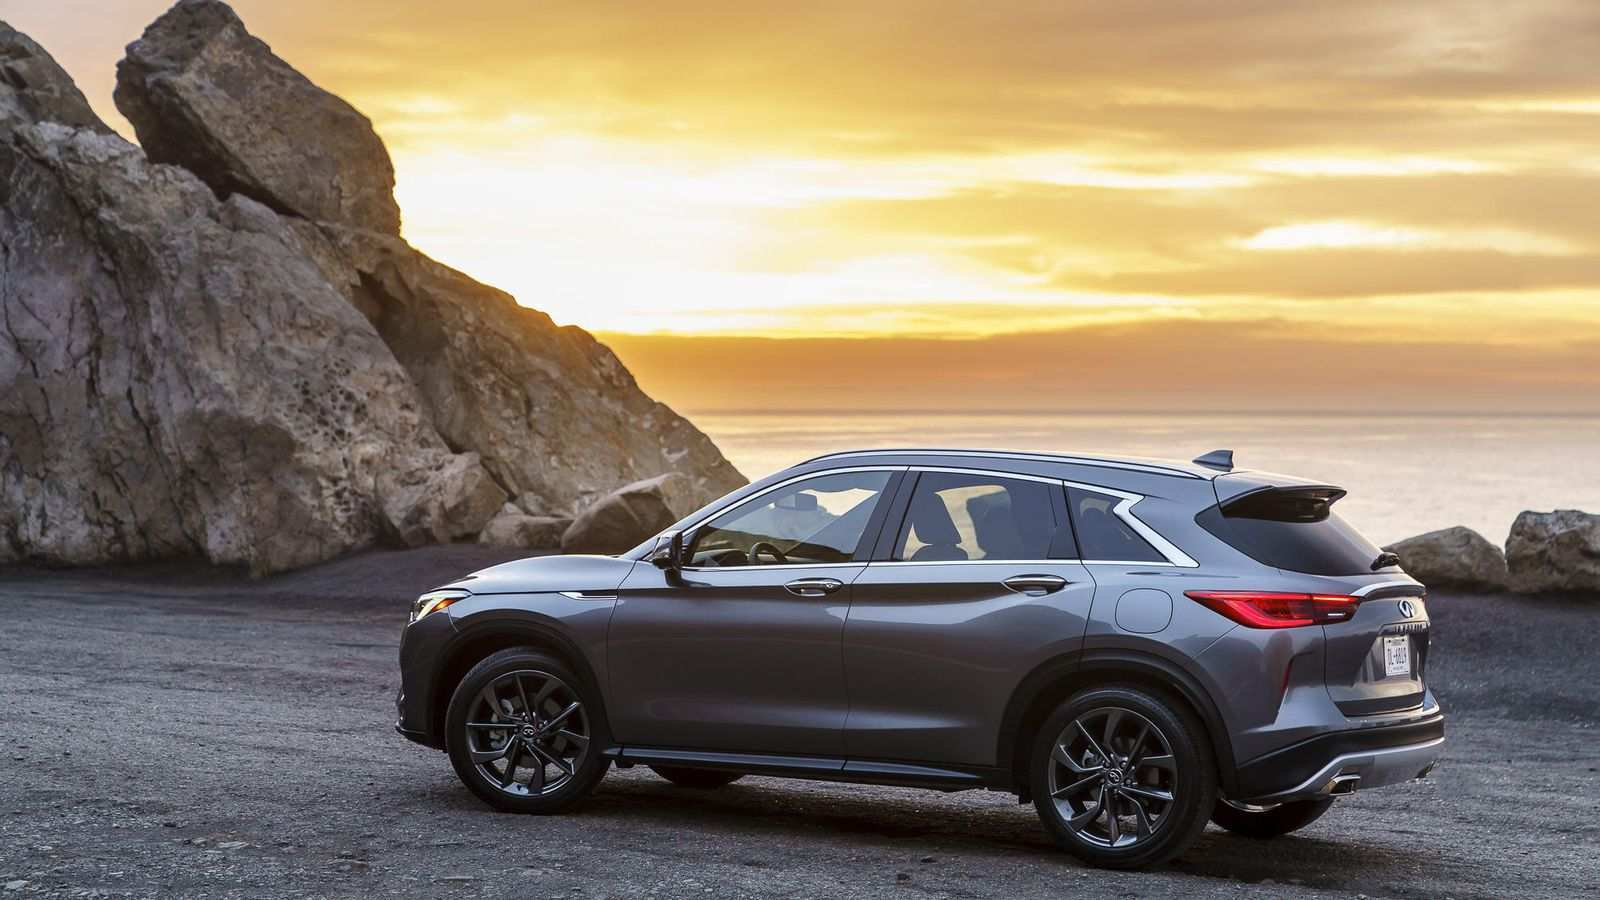 52 Best Review New 2019 Infiniti Qx50 Horsepower Review Model with New 2019 Infiniti Qx50 Horsepower Review